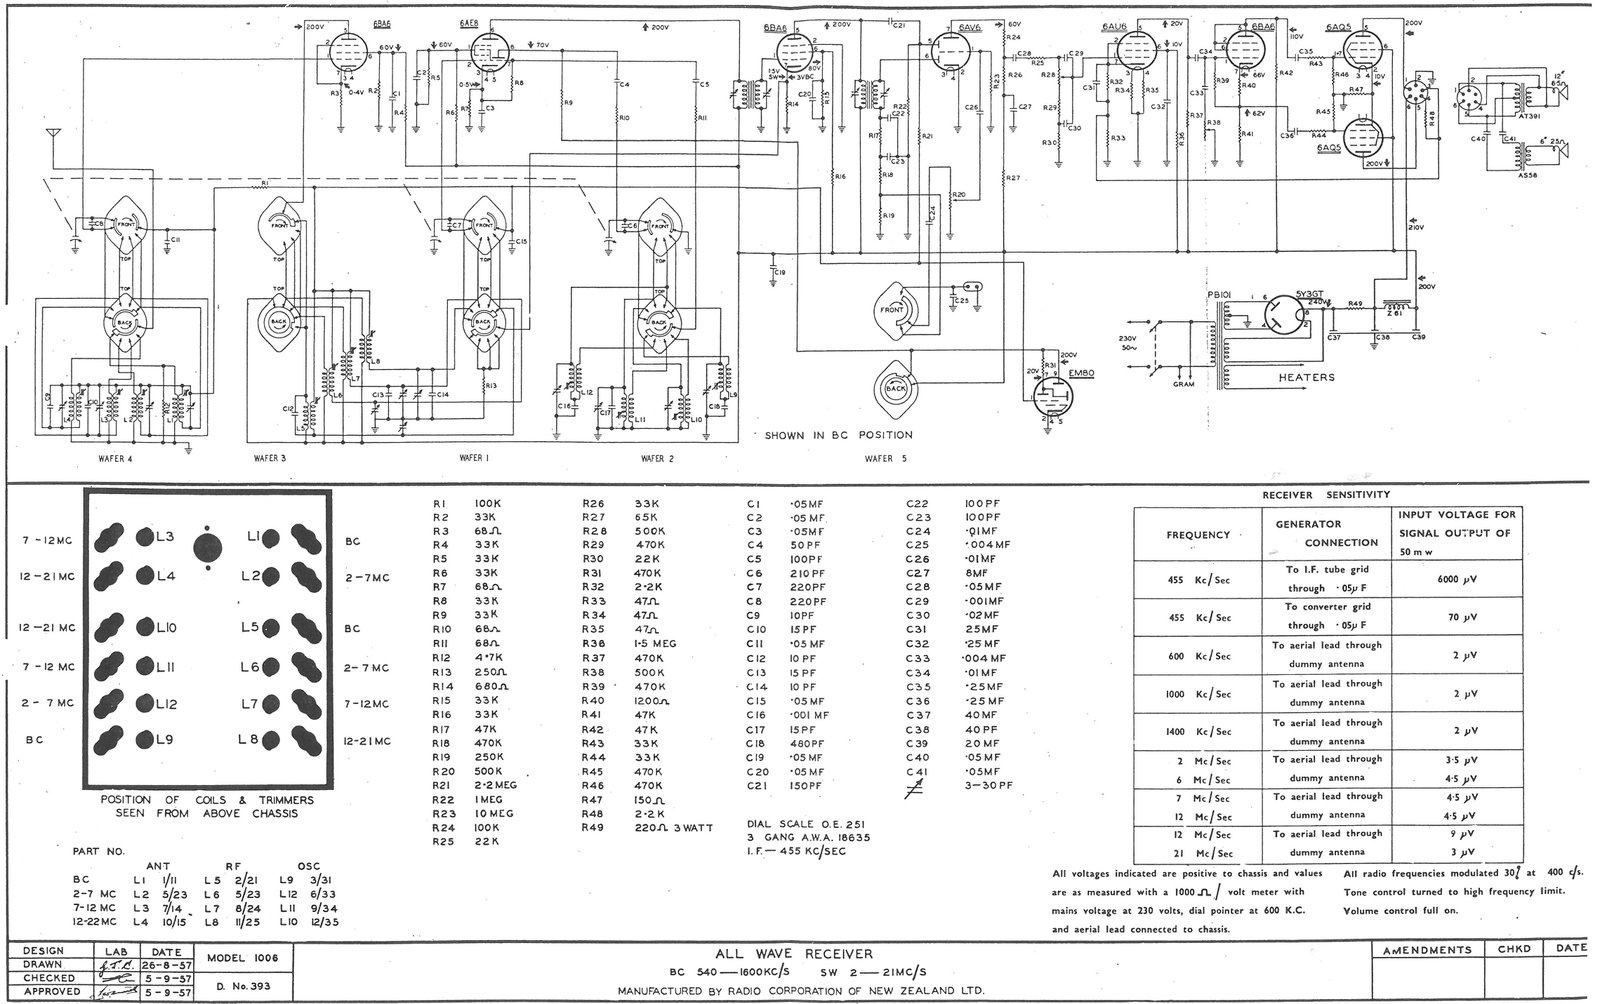 1957 Columbus model 1006 Schematic